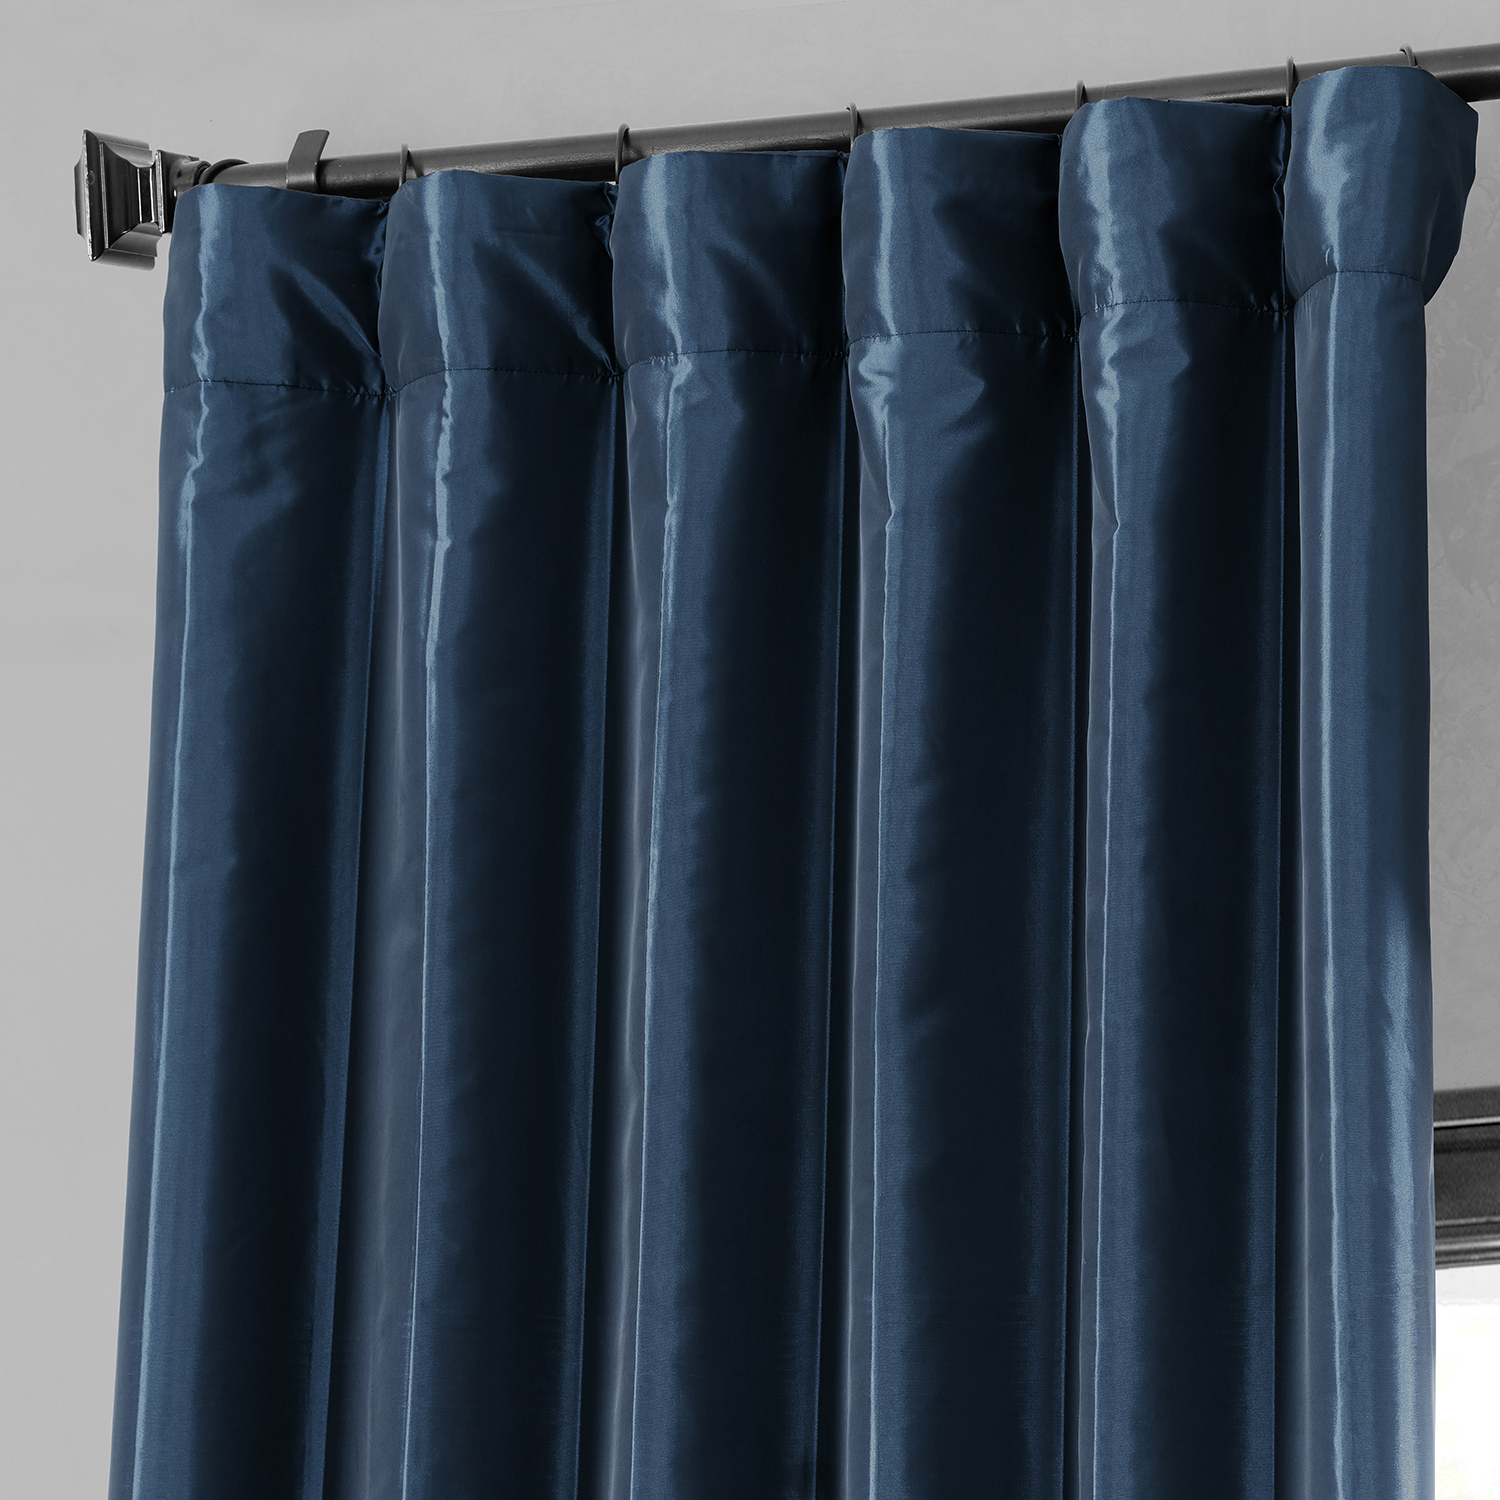 Navy Blue Blackout Faux Silk Taffeta Curtains Drapes